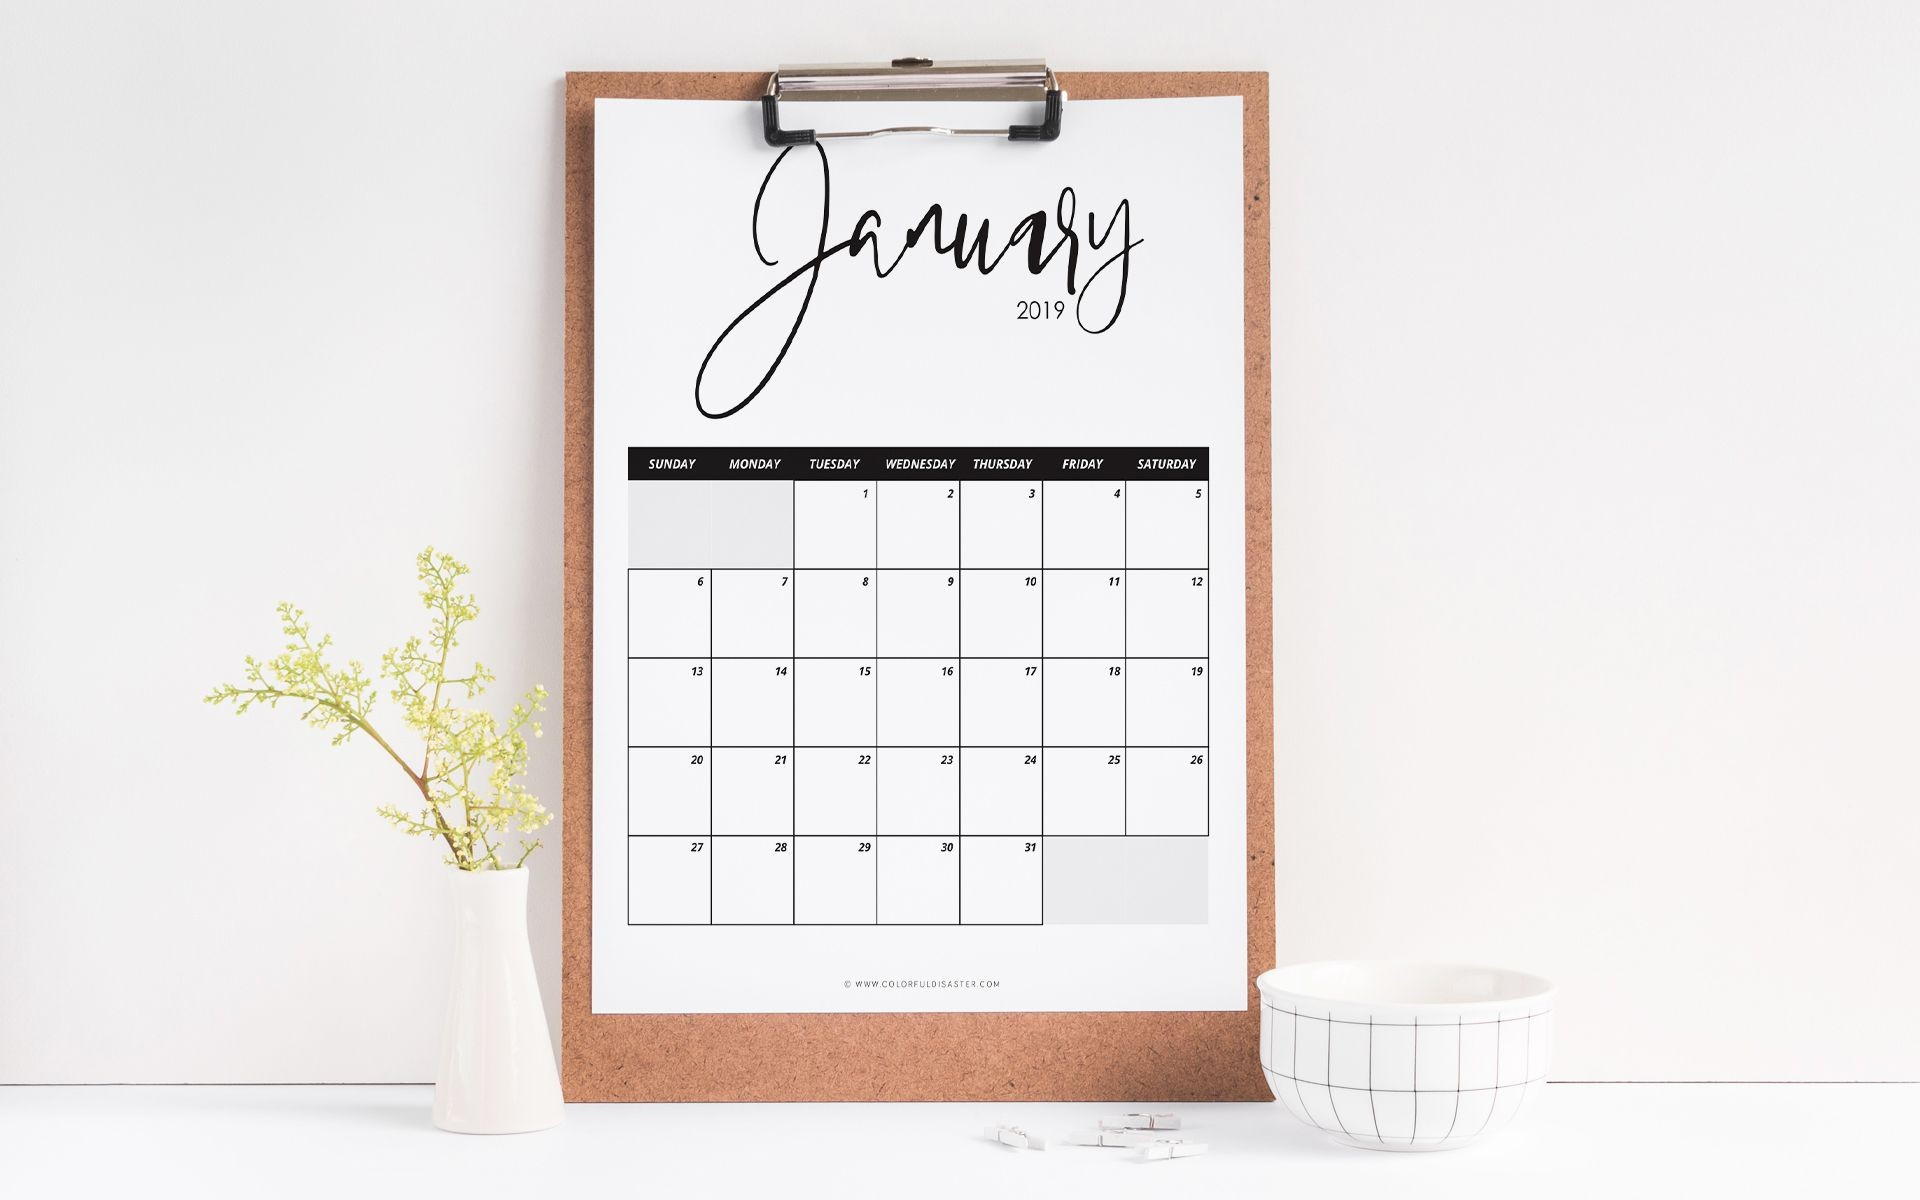 March 2019 Calendar Landscape Más Reciente 10 Stylish Free Printable Calendars for 2019 Of March 2019 Calendar Landscape Recientes 2018 Hubble Space Telescope Advent Calendar the atlantic